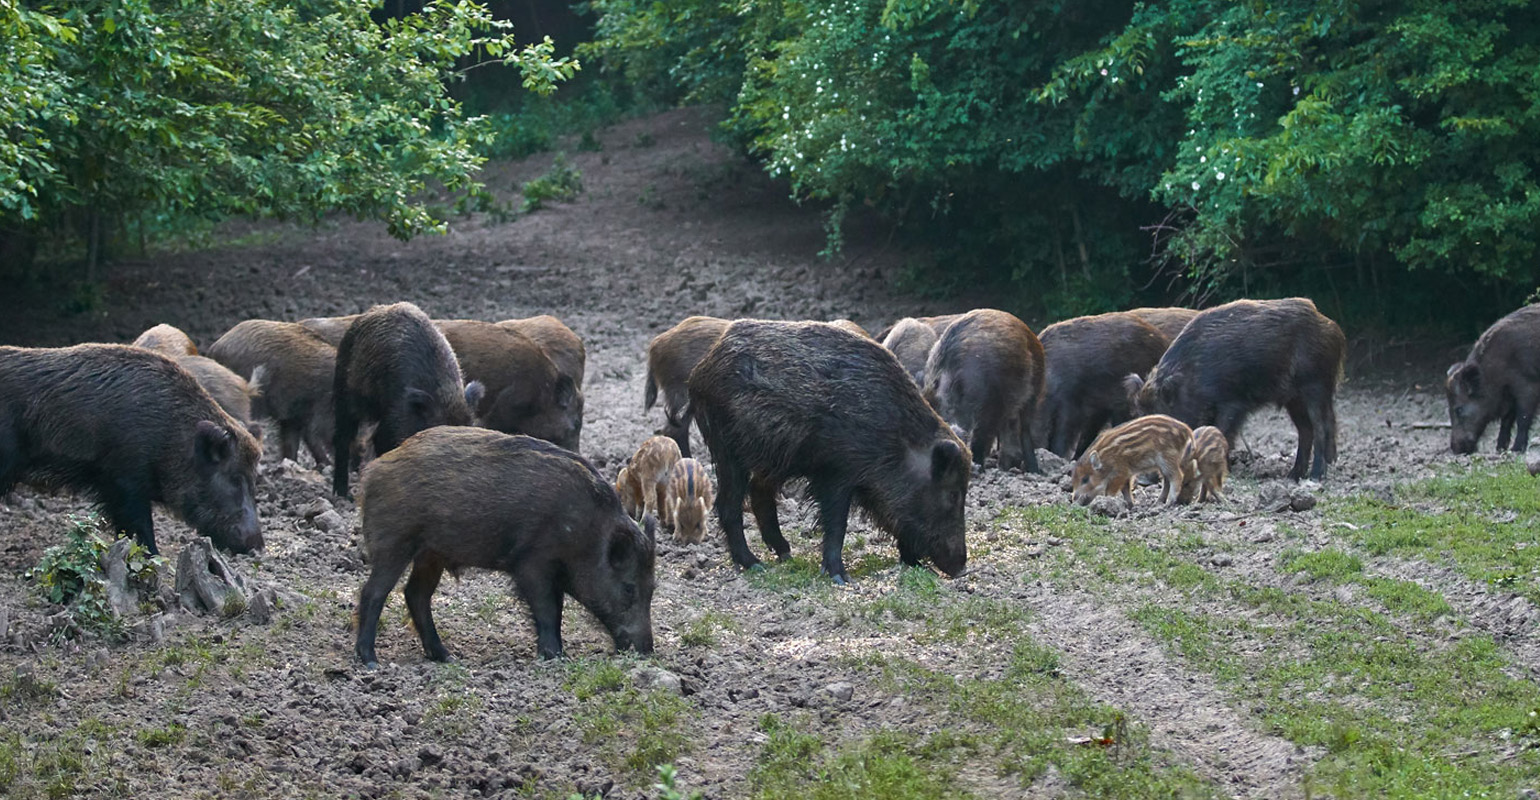 wild-hog-forest-GettyImages-971101980-web.jpg